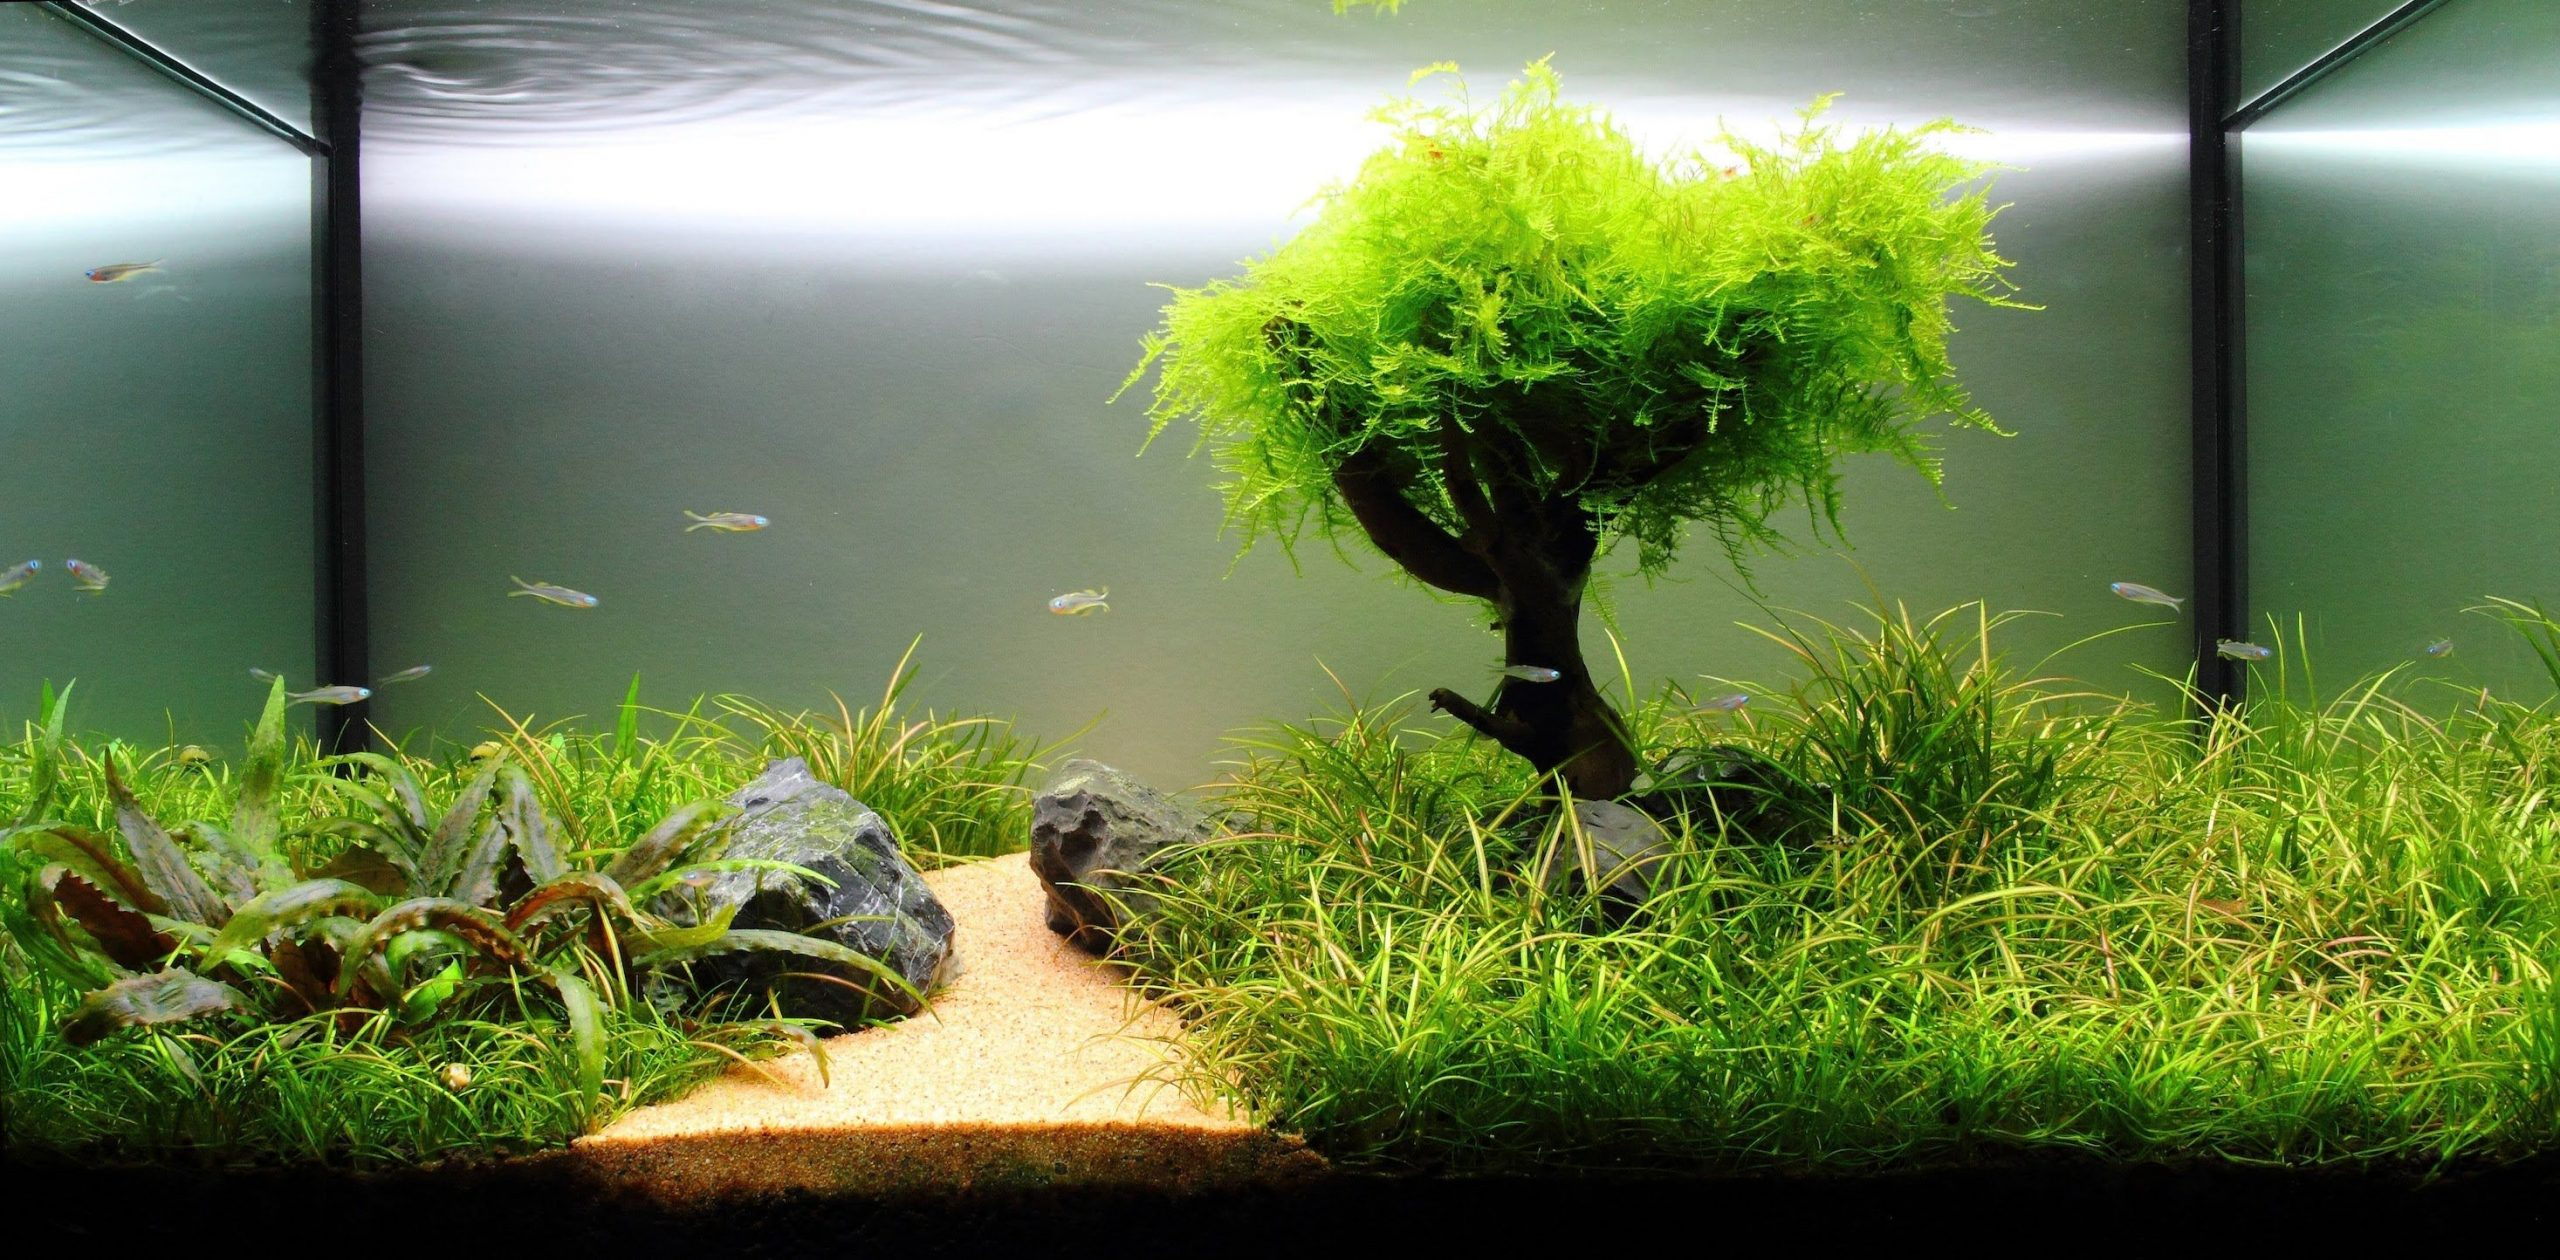 How to take care of plants in the aquarium?